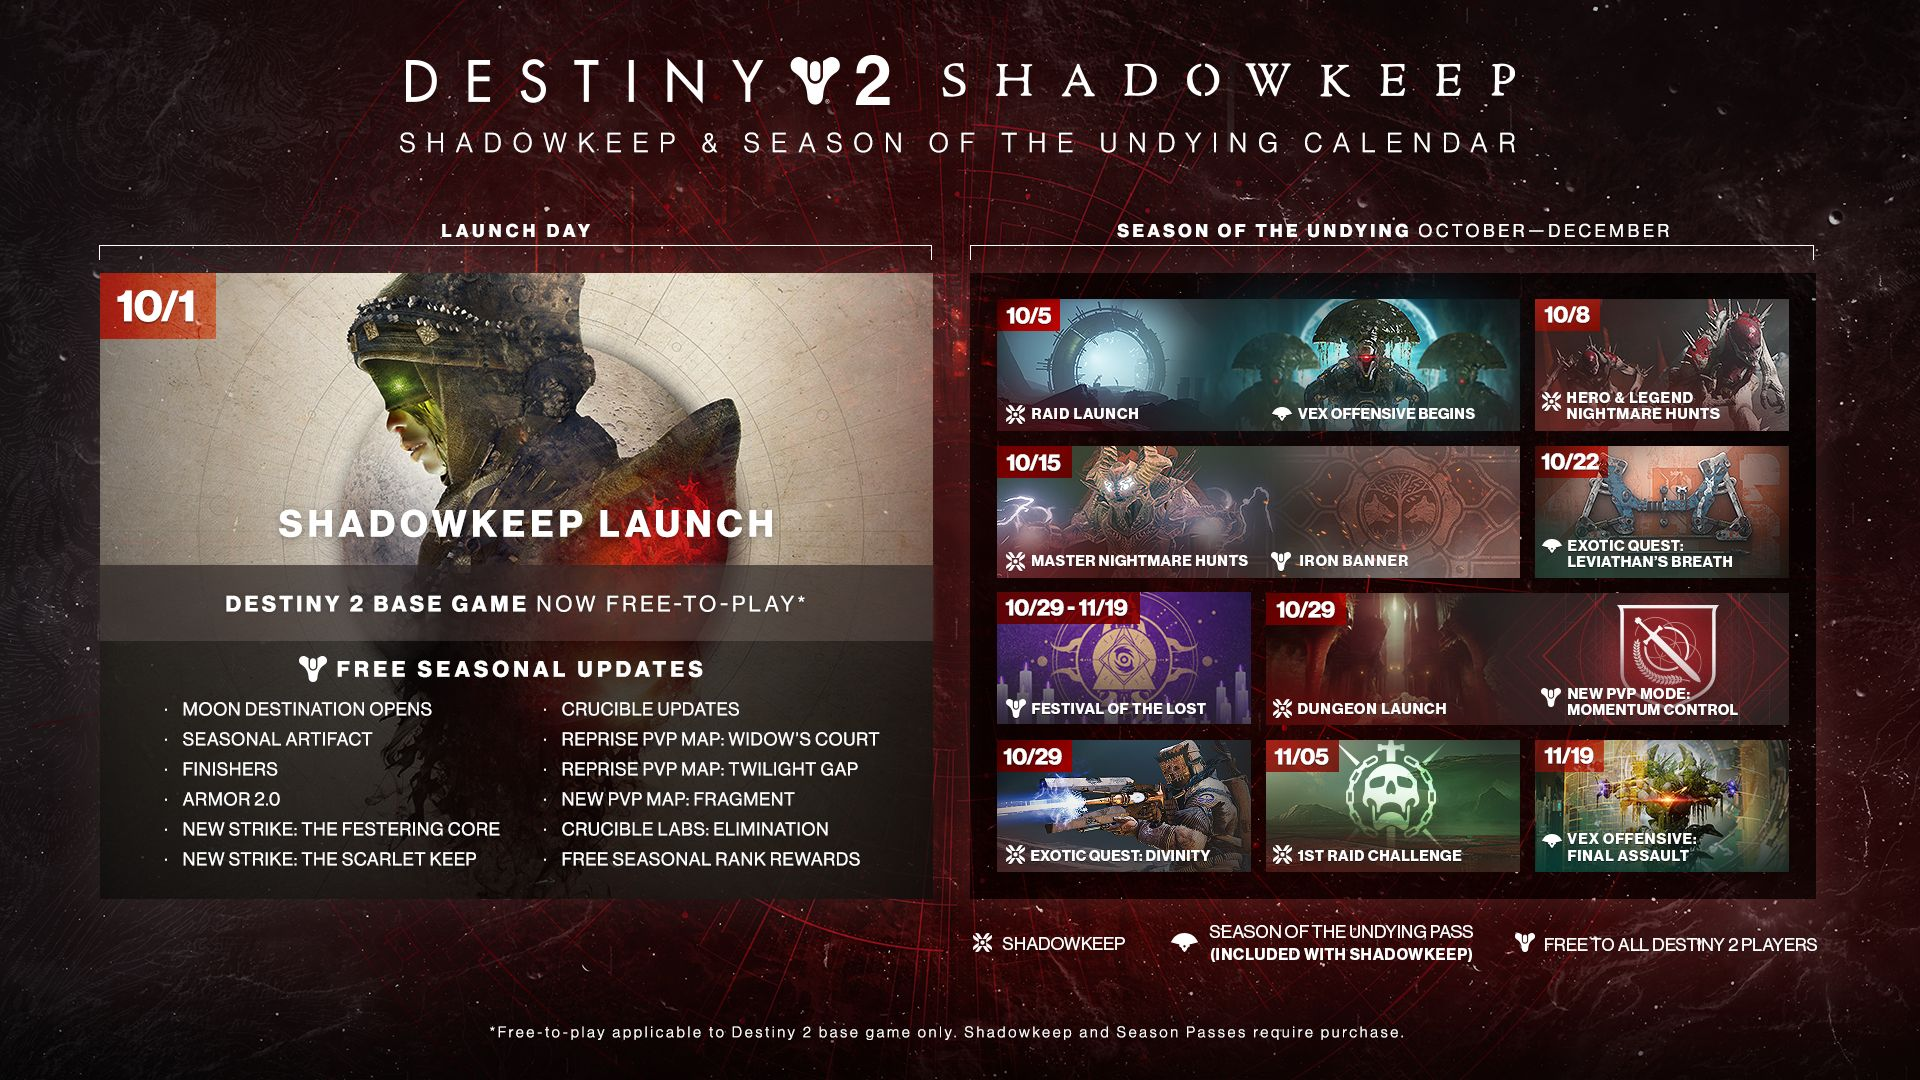 Destiny 2 Shadowkeep roadmap